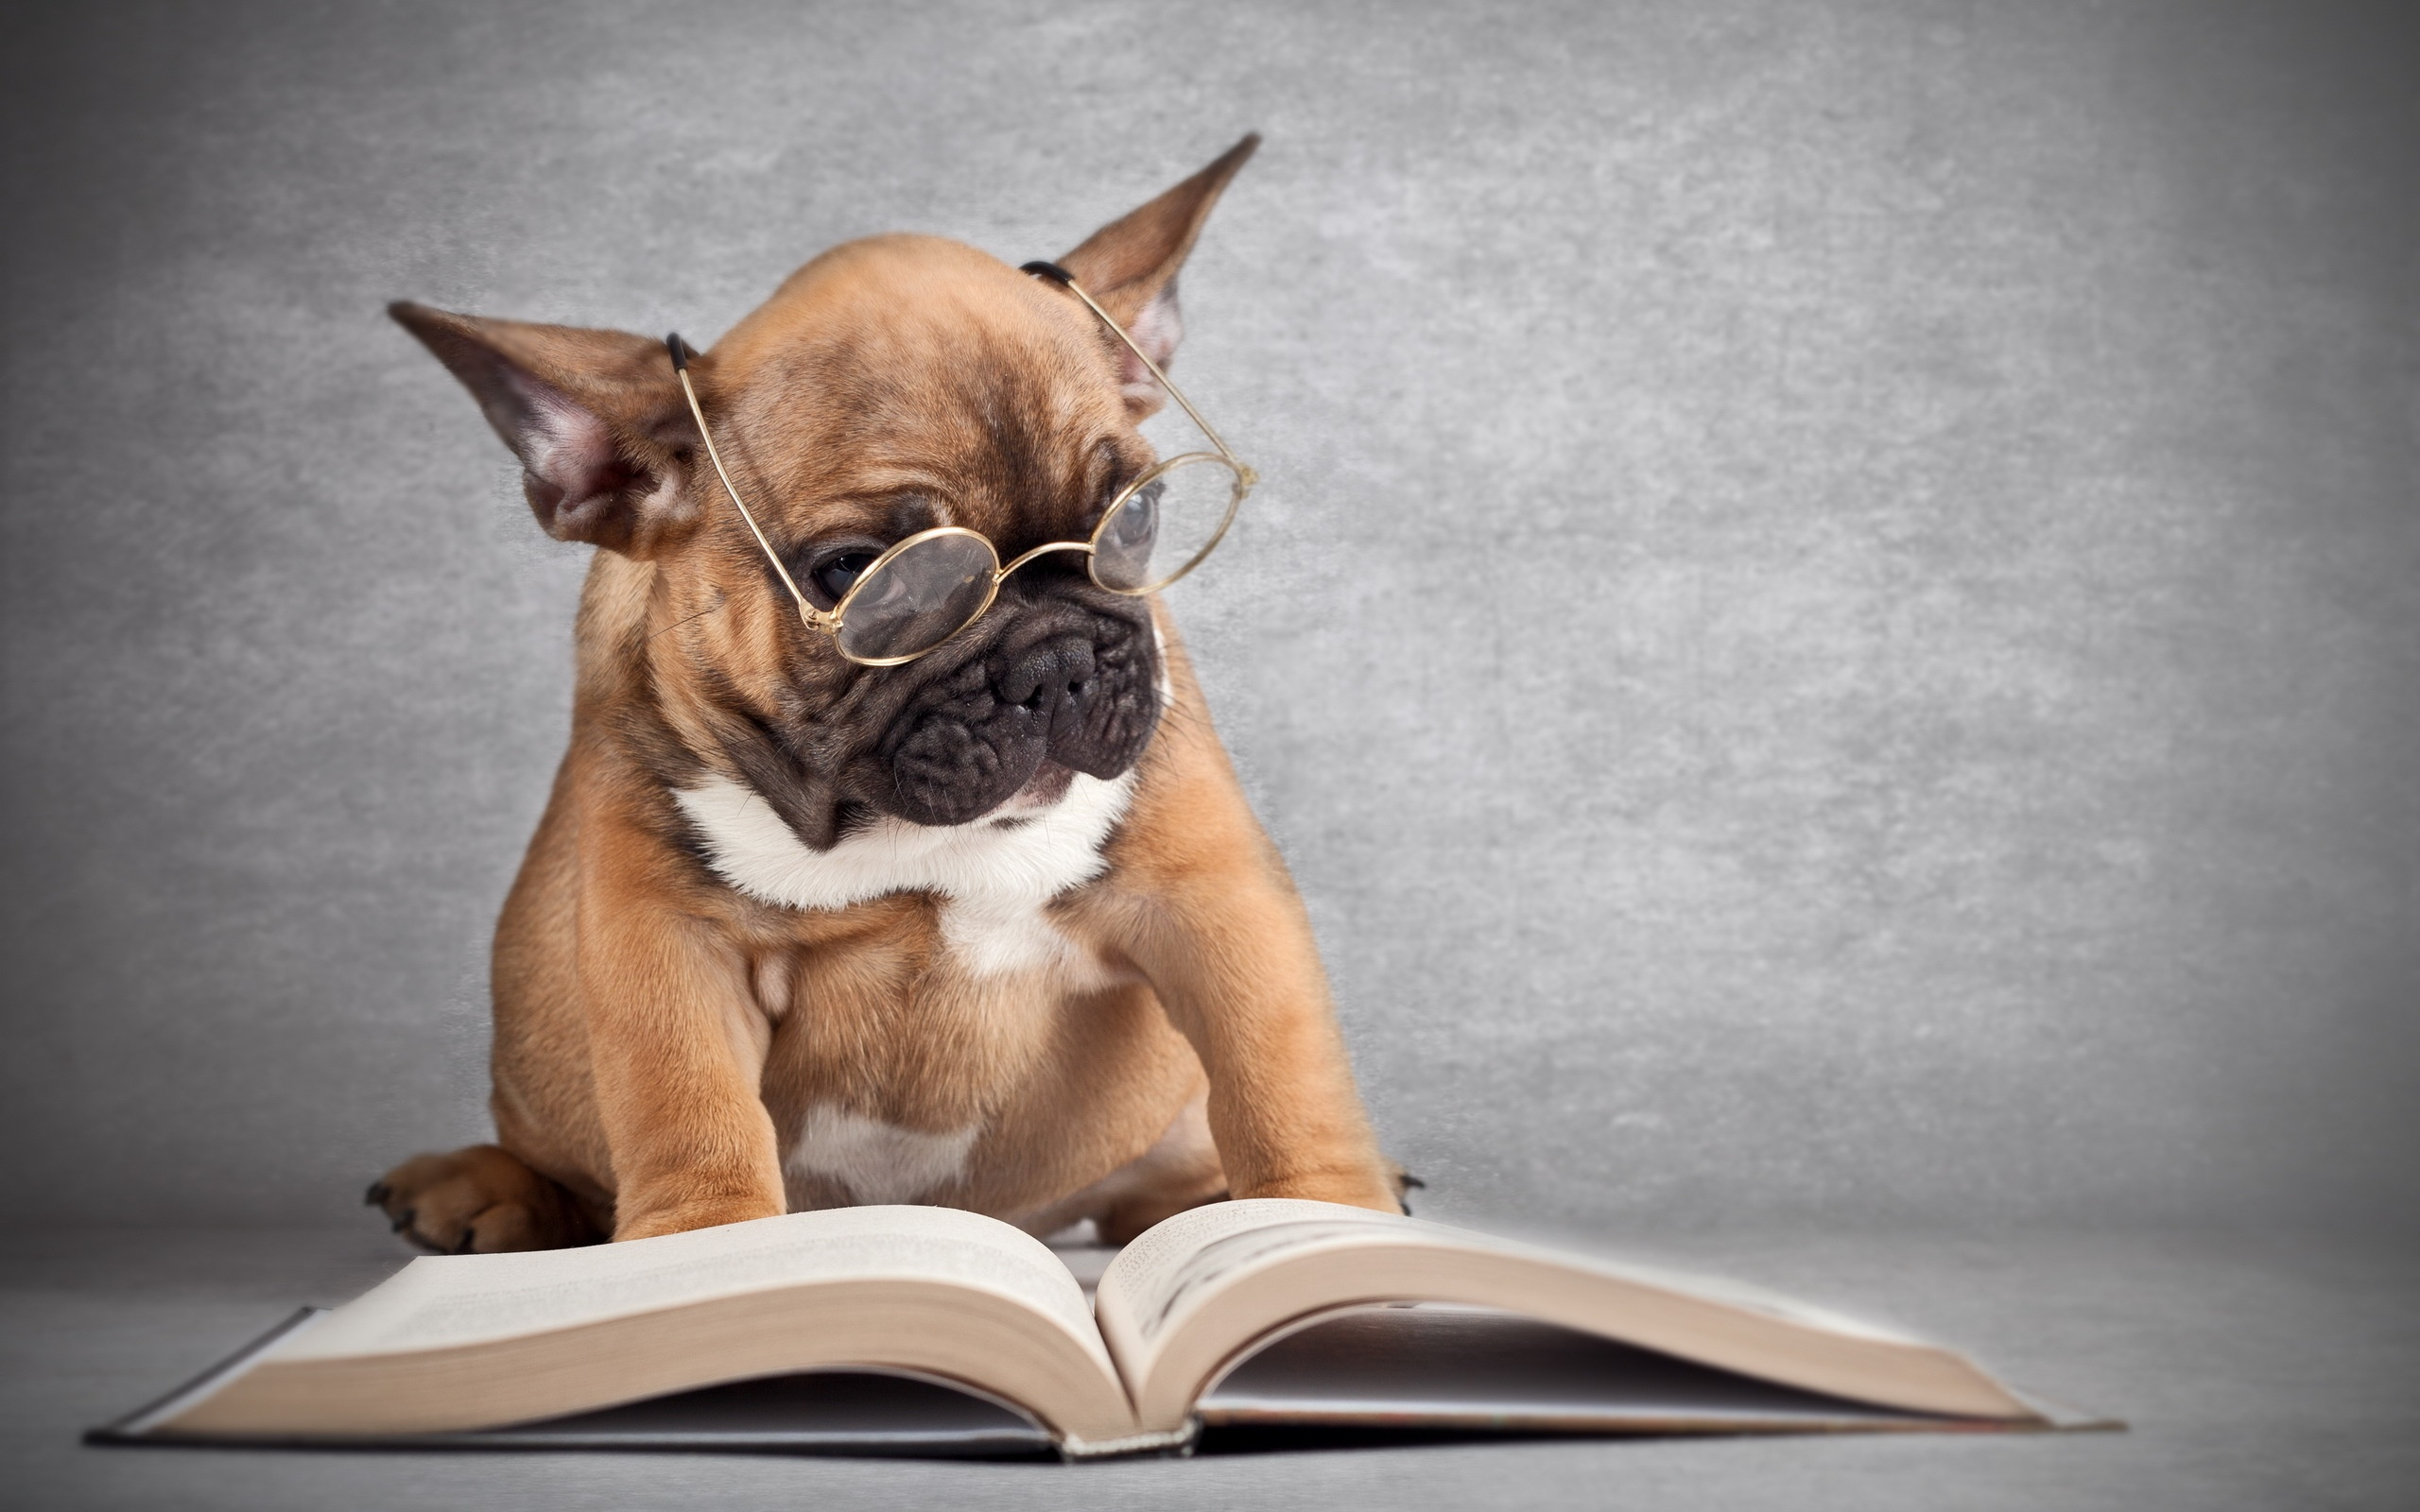 Dog-wearing-glasses-reading-a-book_2560x1600